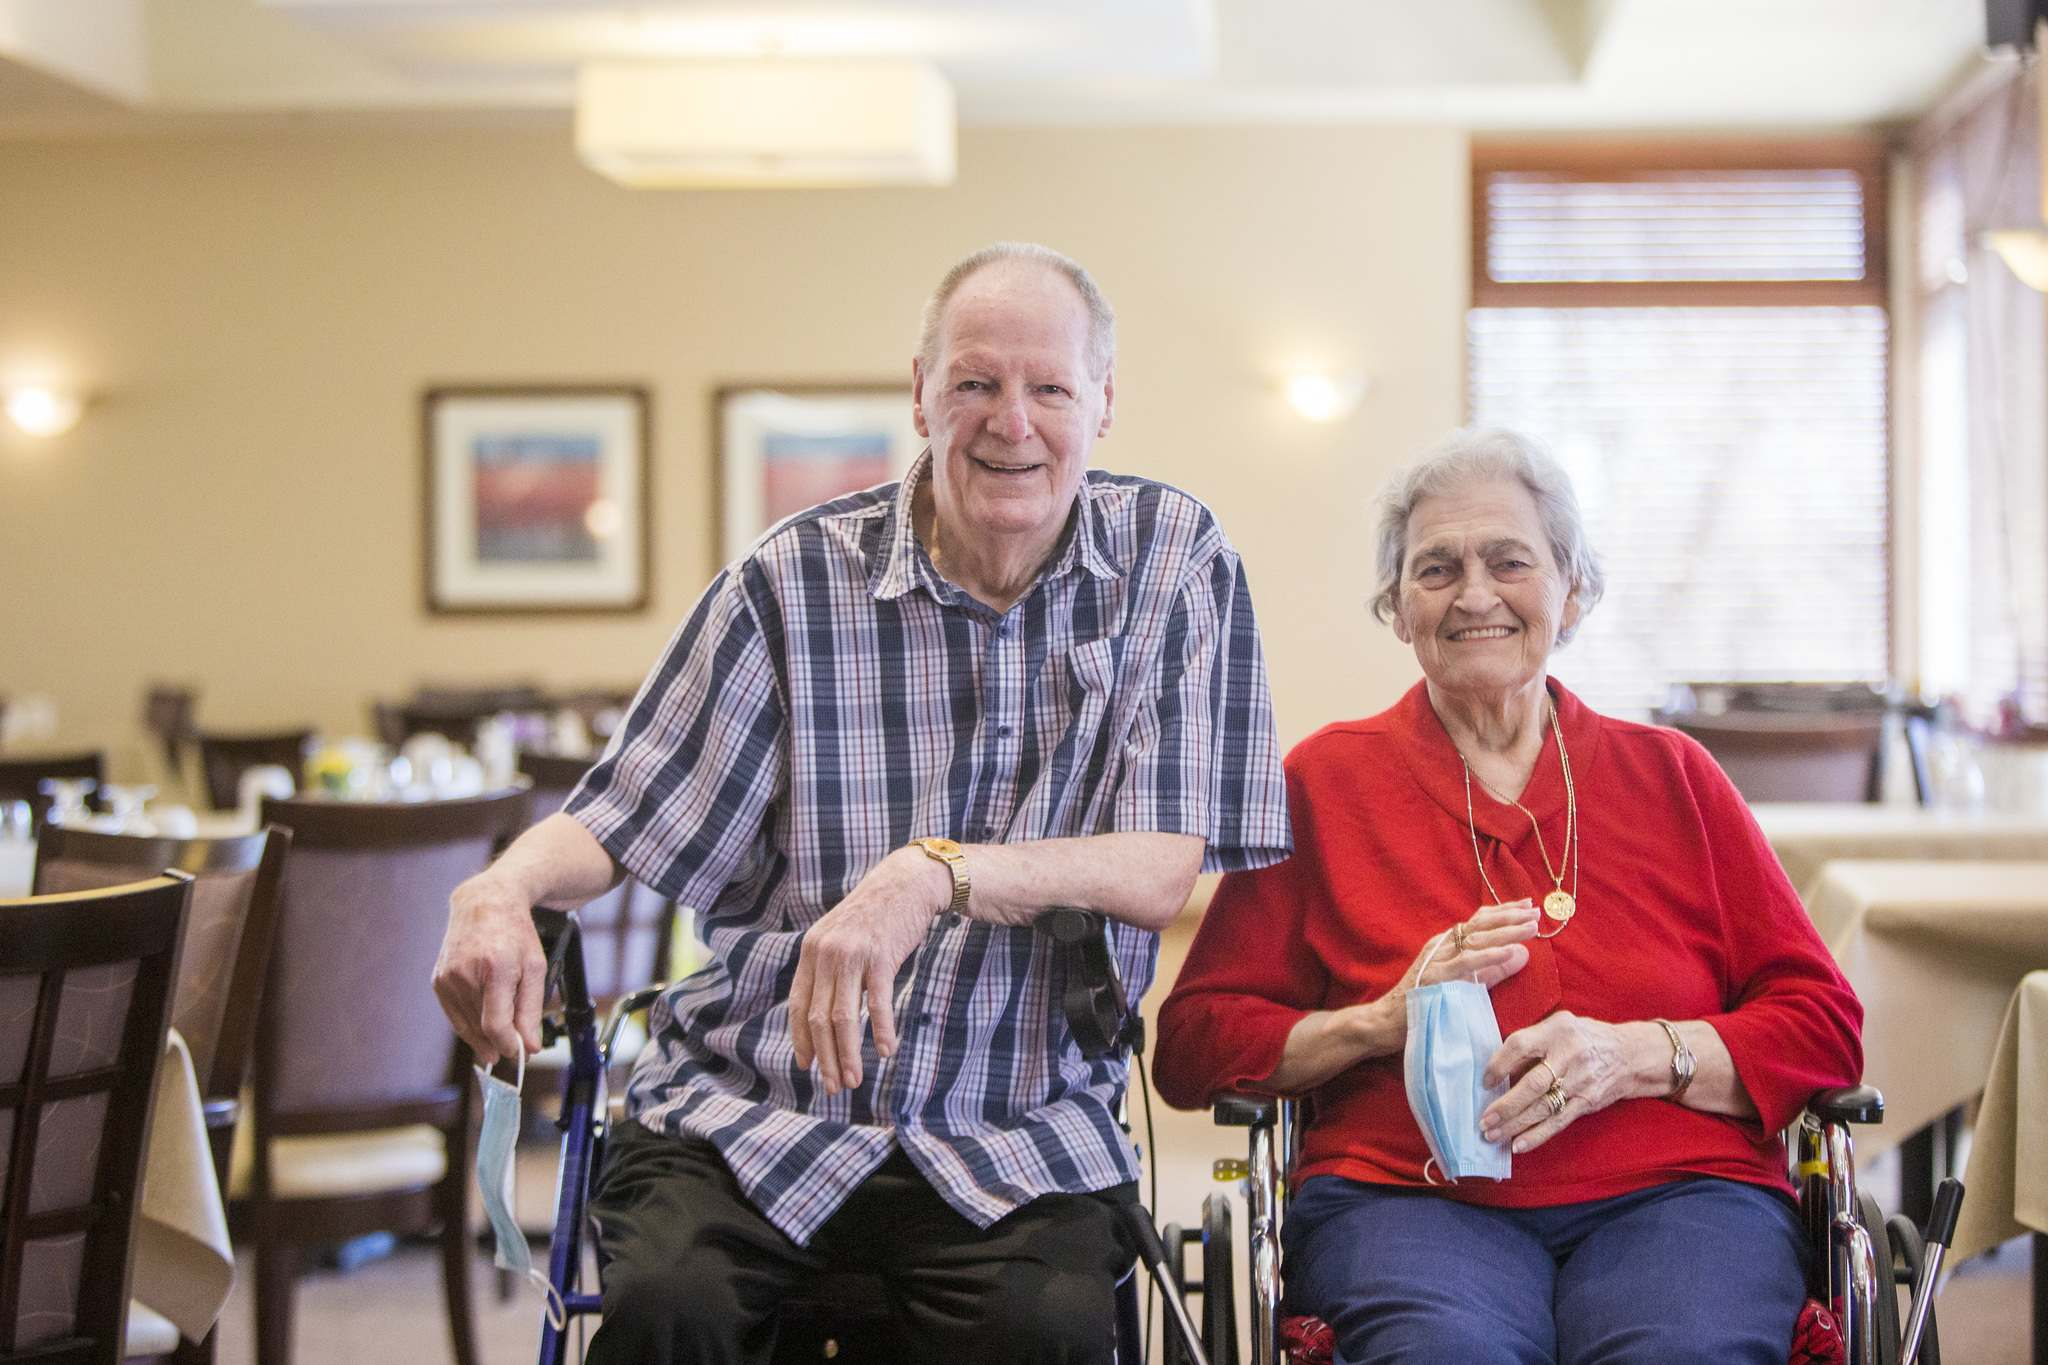 Frank Tervoort, who lives at Riverwood with Joyce, his wife of almost 60 years, is grateful for the staff who have somehow kept the 240 people living in the complex from getting ill. (Mikaela MacKenzie / Winnipeg Free Press)